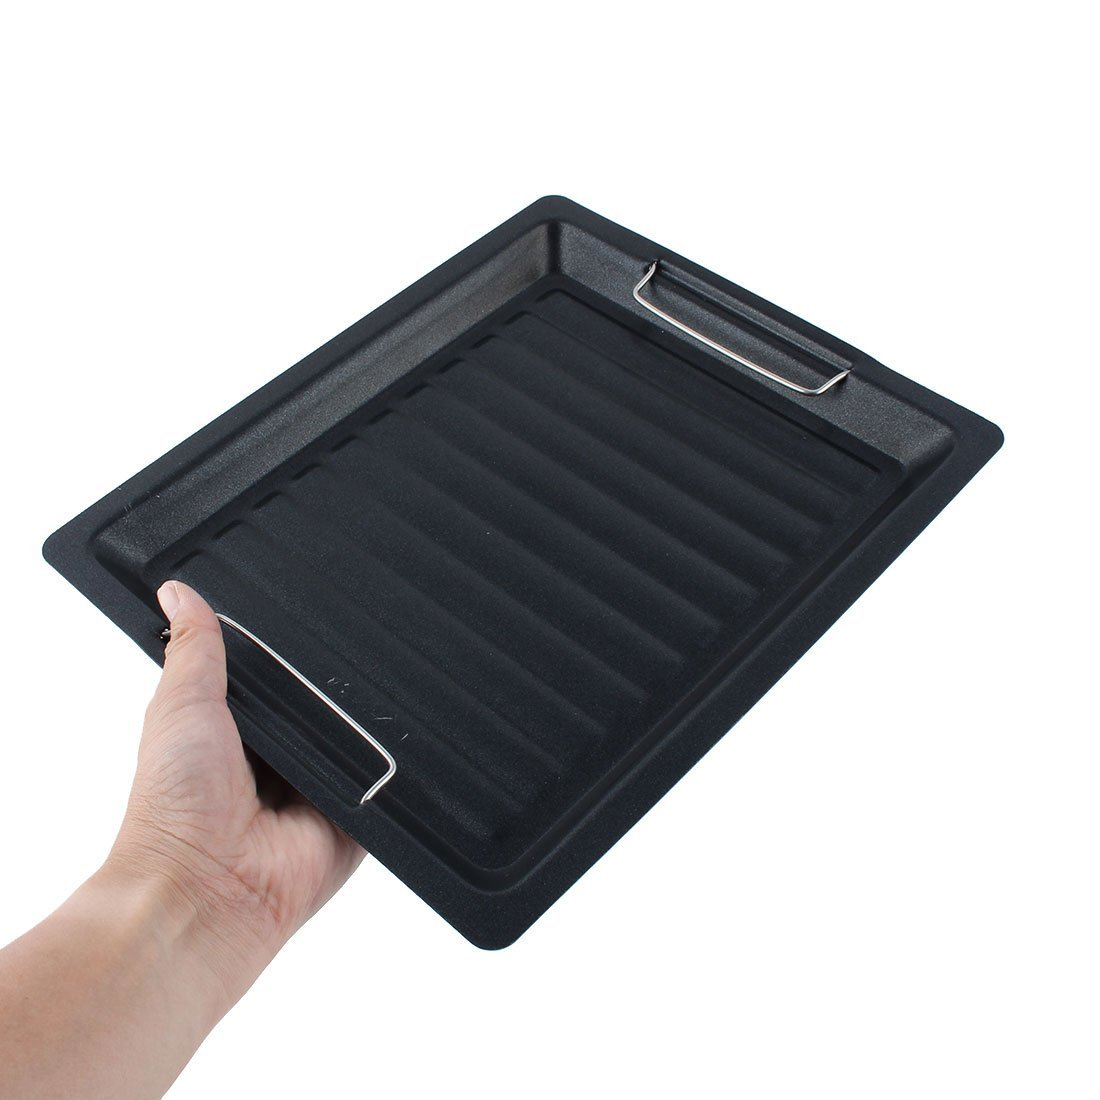 DealMux Outdoor Camping Picnic BBQ Barbecue Metal Grill Tool Drip Tray Roasting Pan